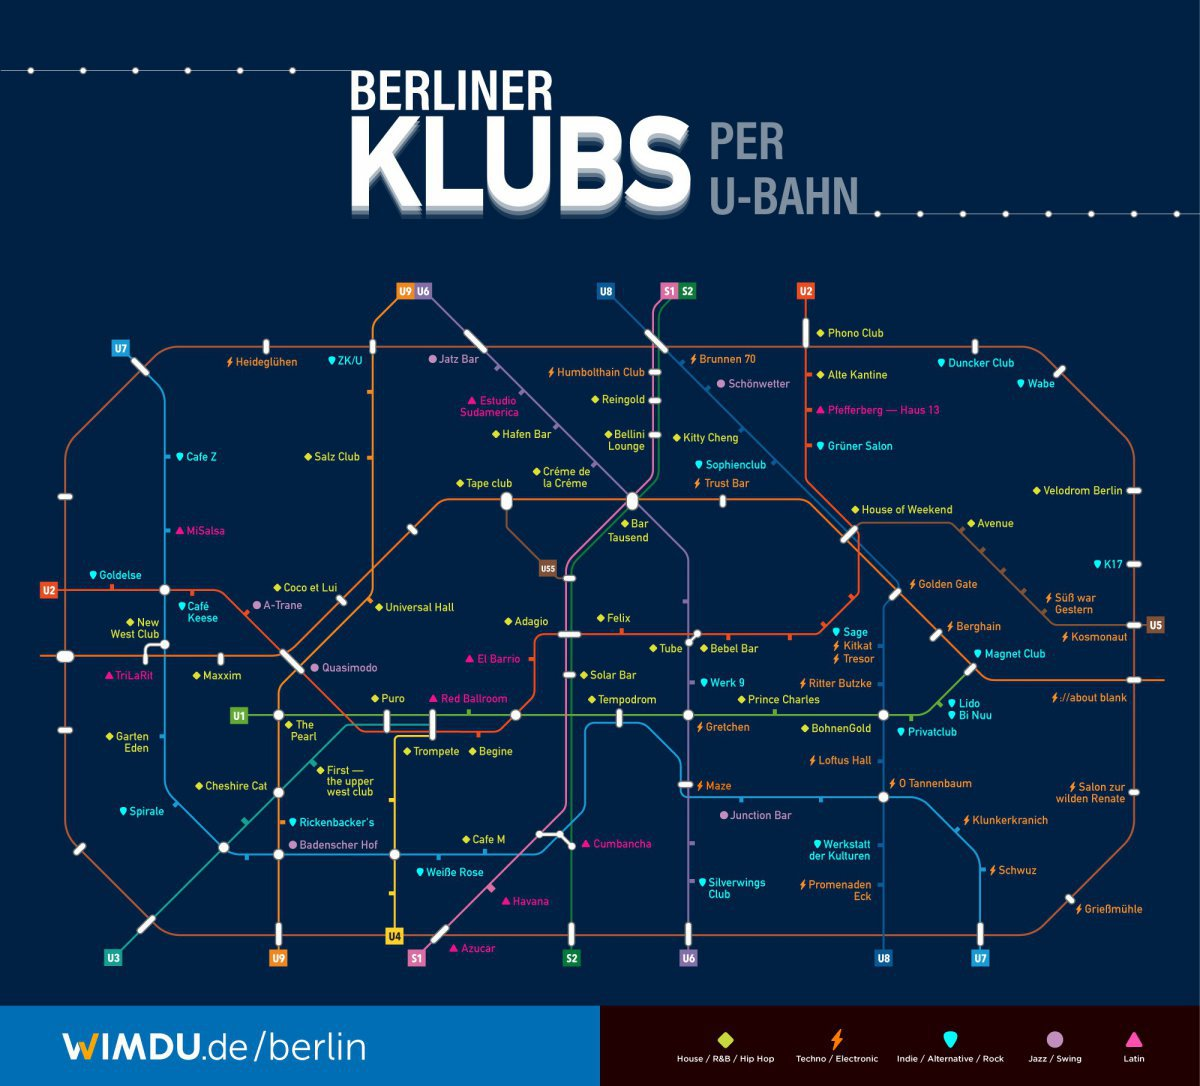 berlin clubs map